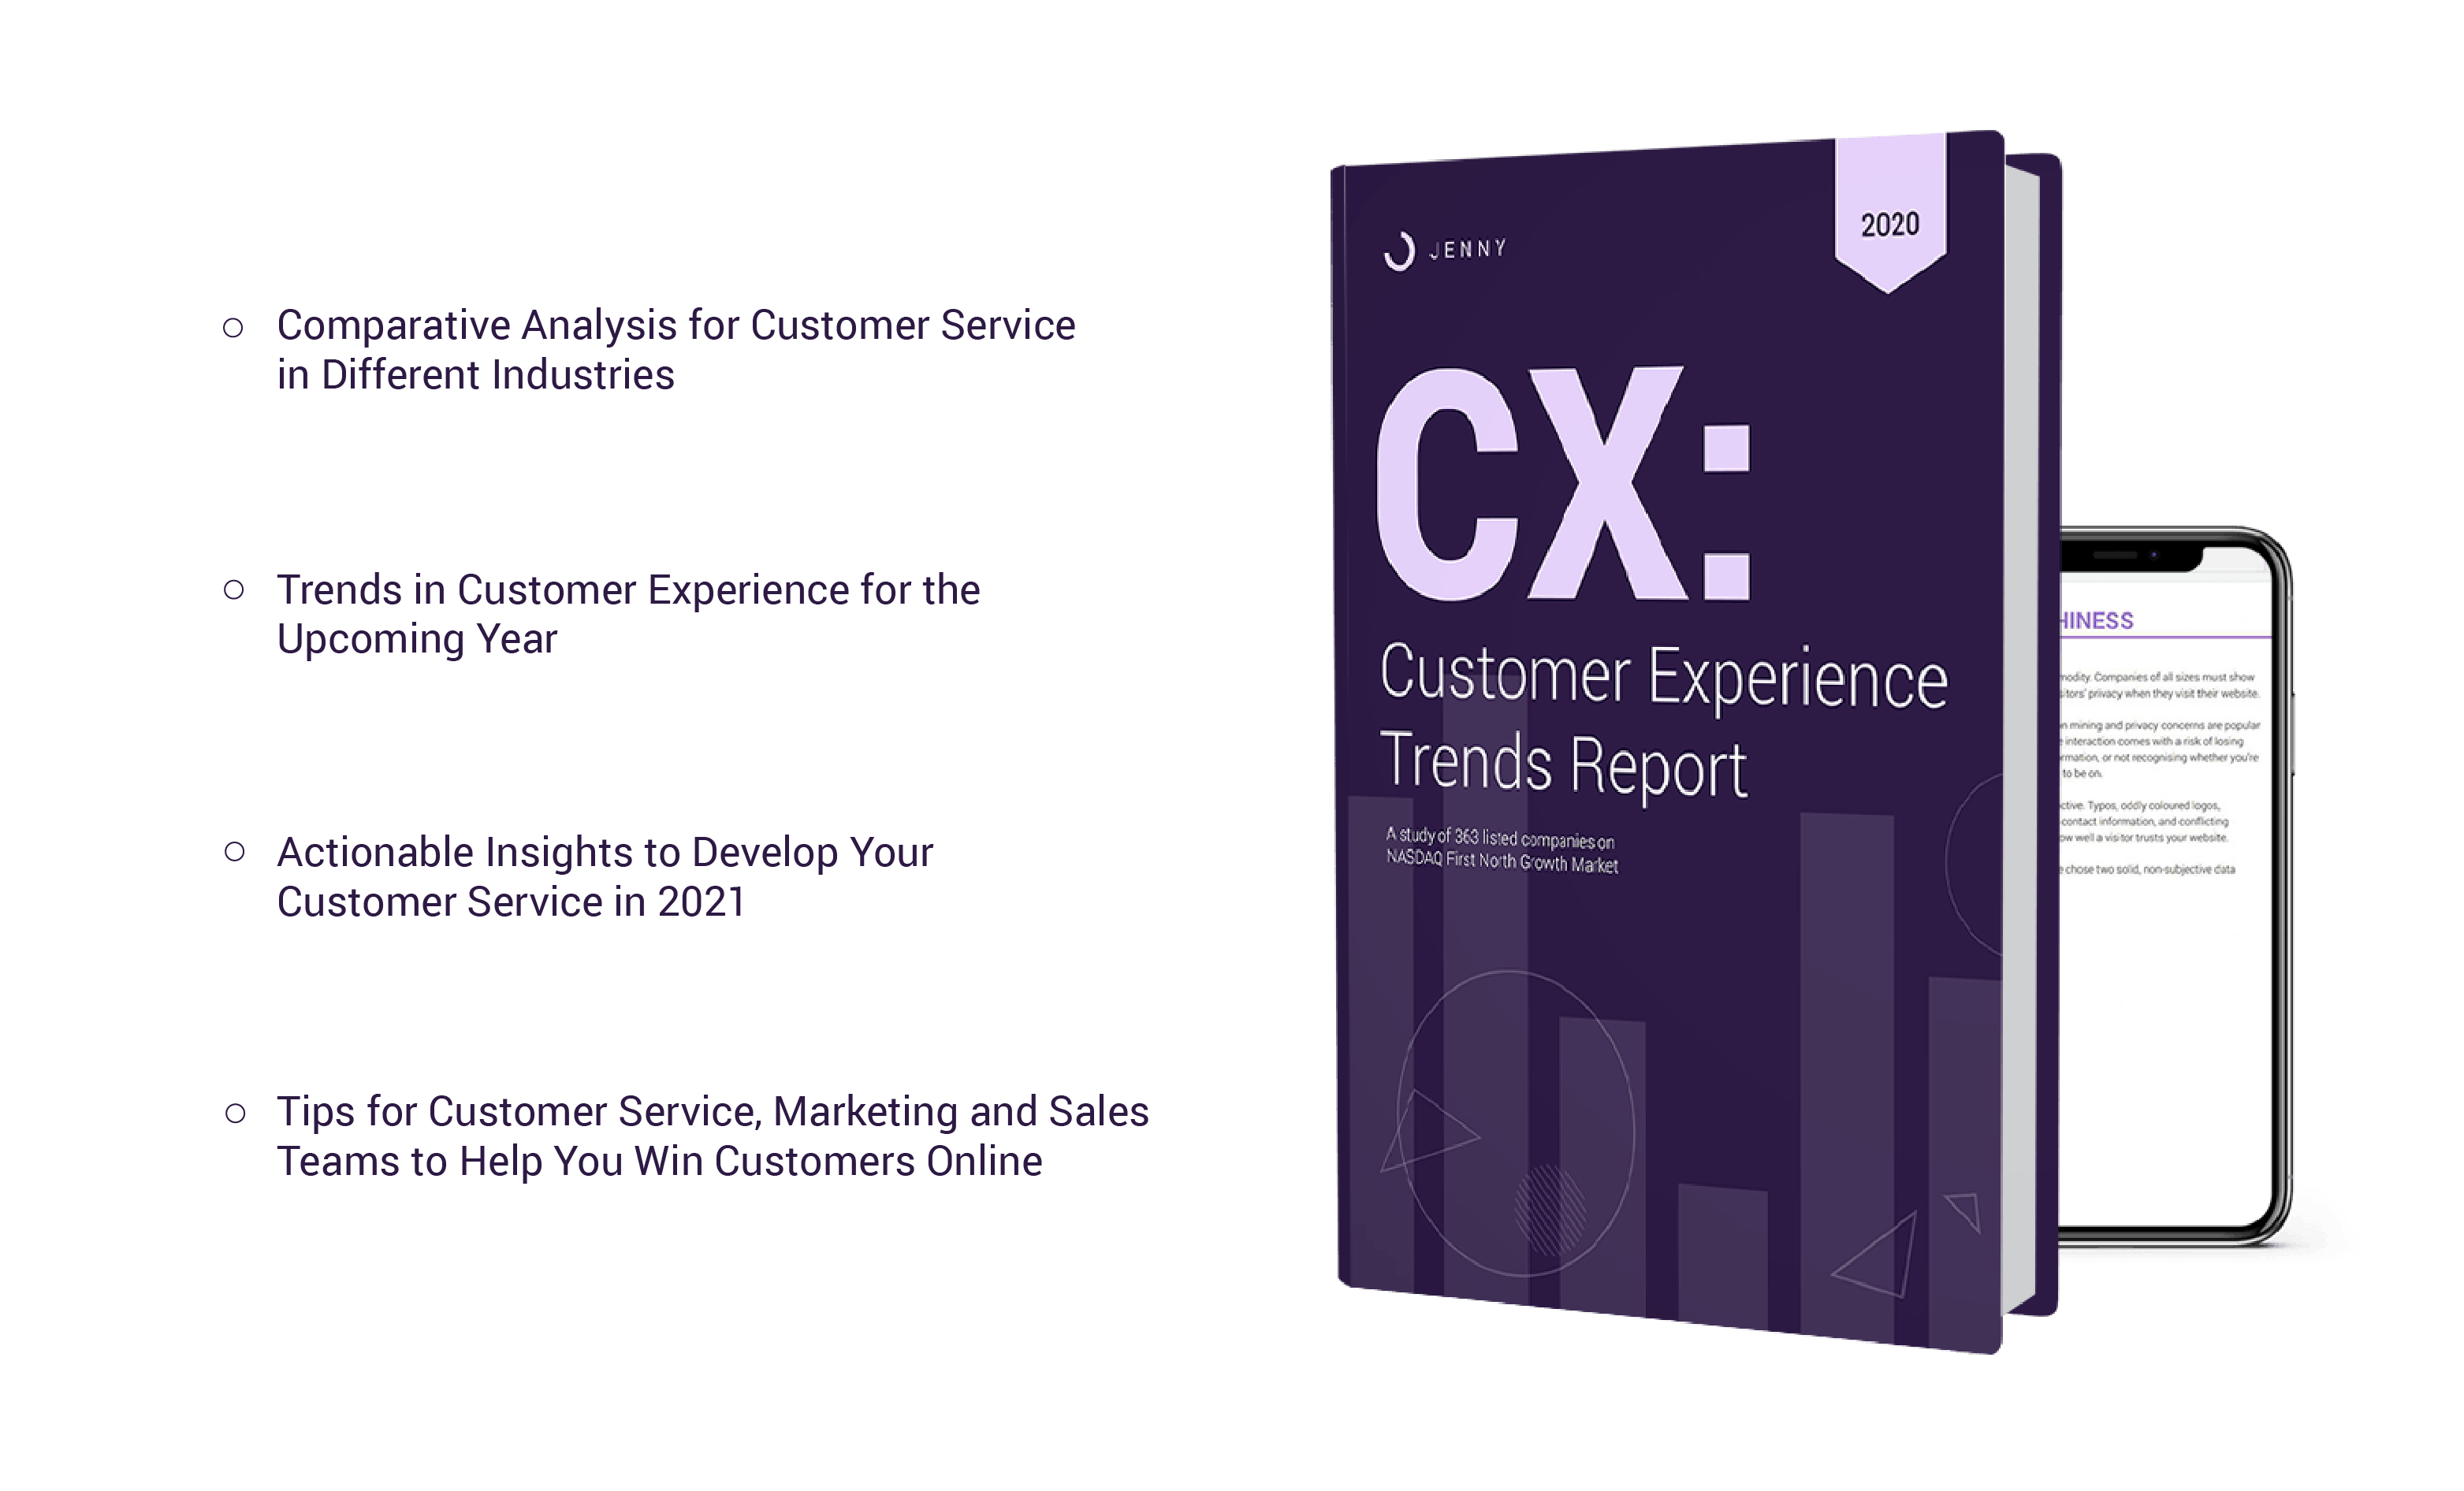 customer experience trends report 2020 getjenny-01